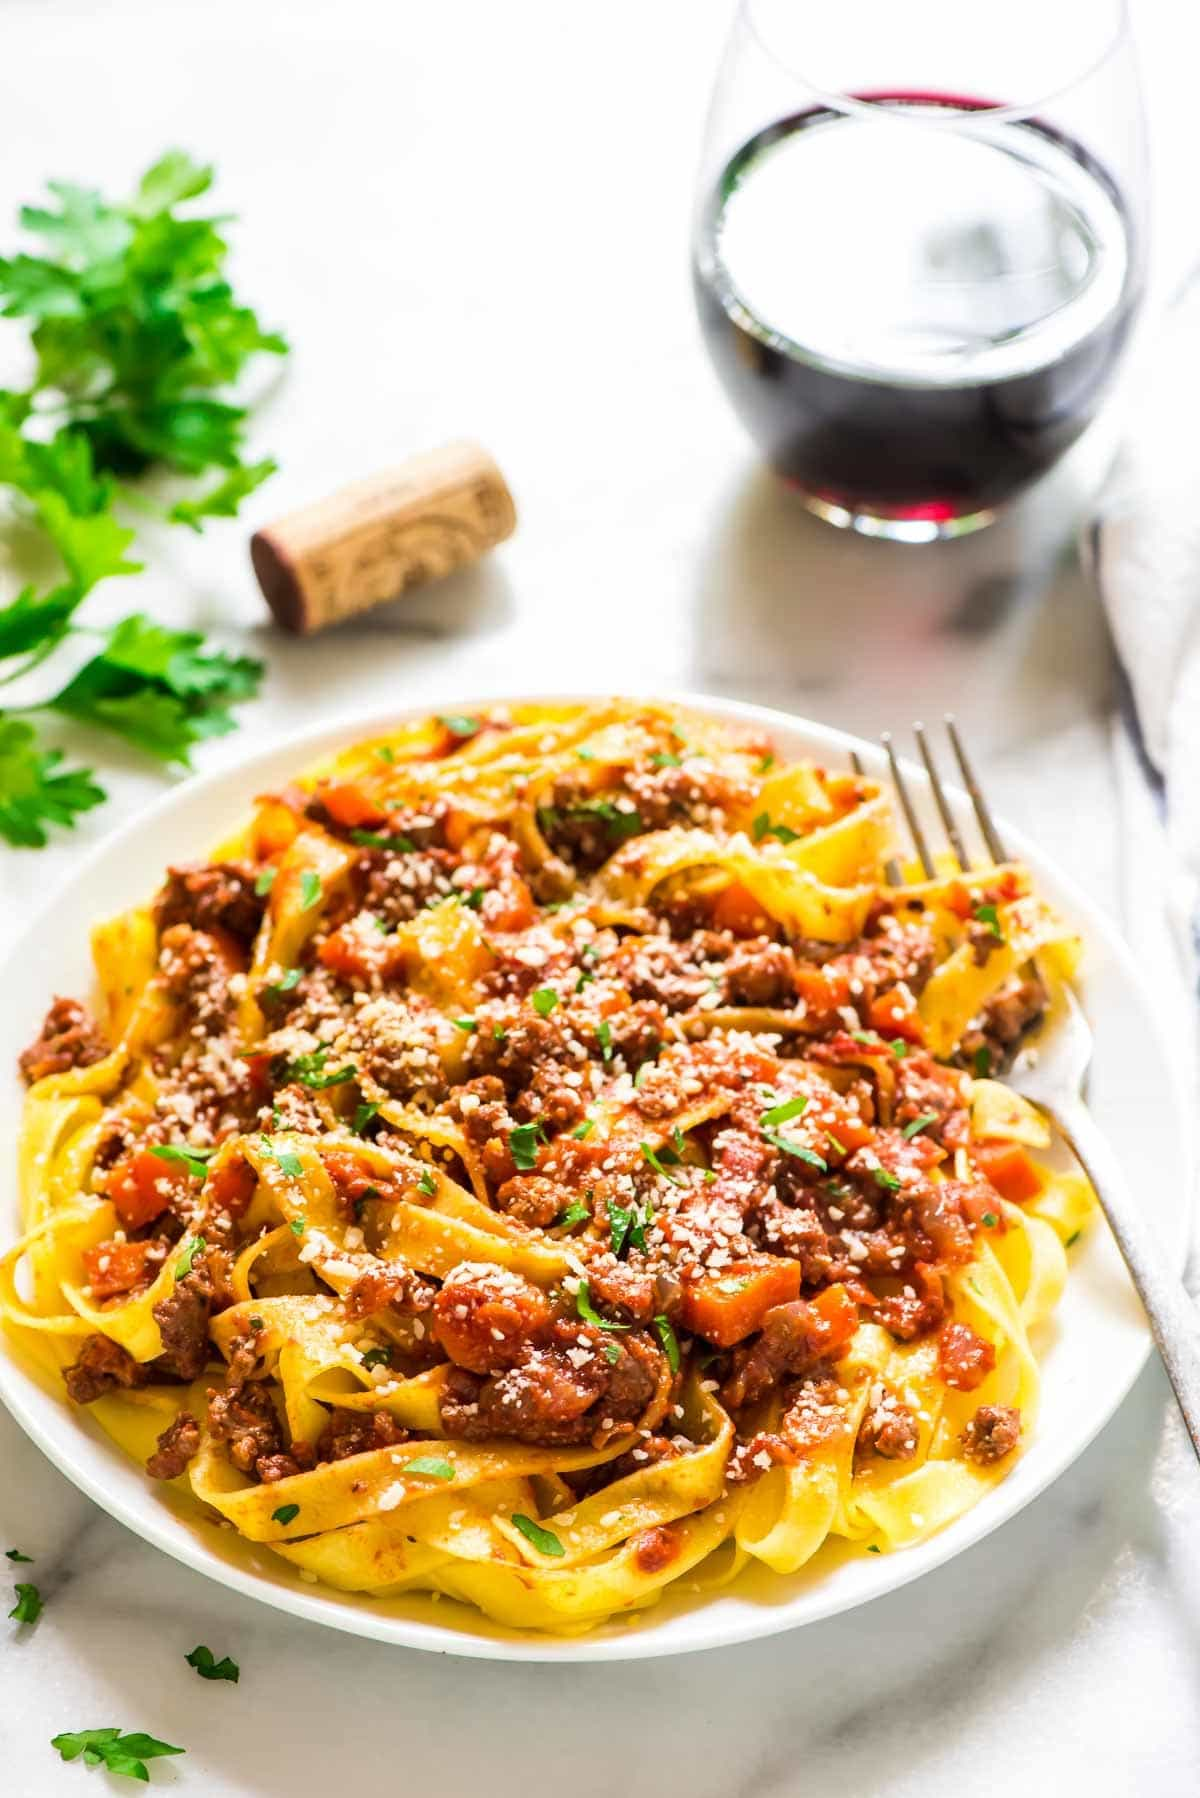 Healthy Turkey Bolognese. Quick, easy, and tastes authentic! Recipe at wellplated.com